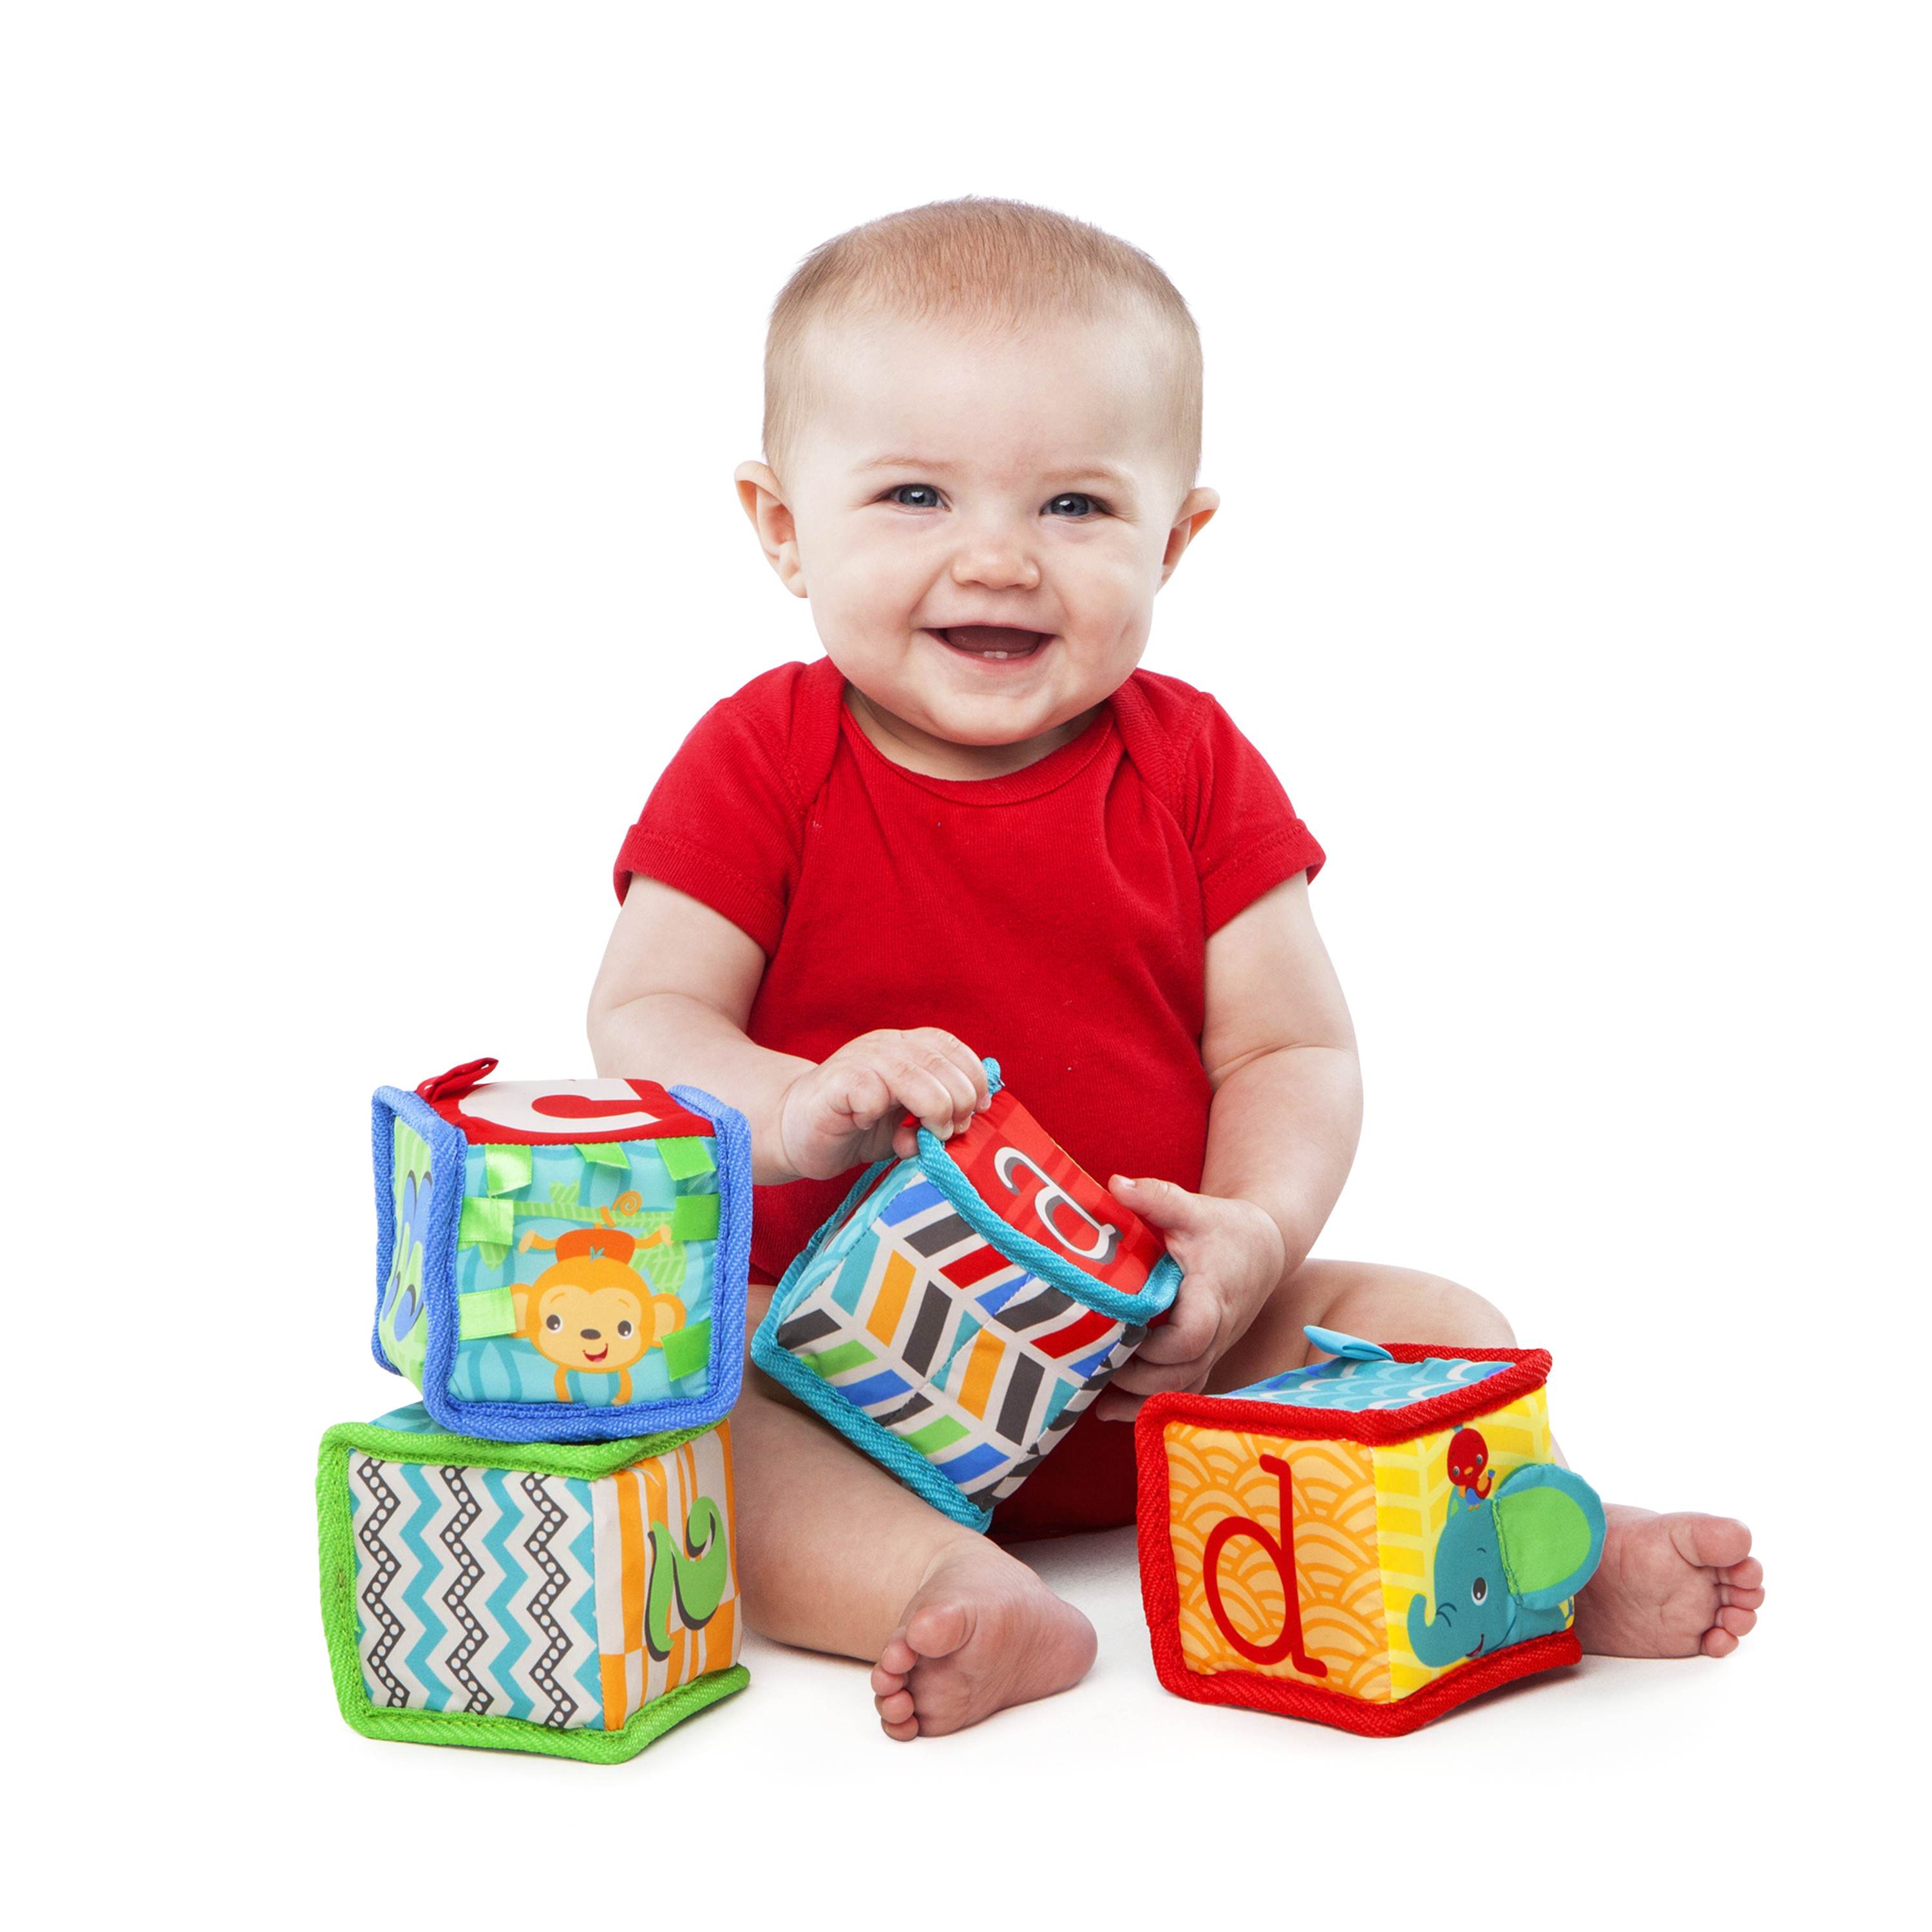 Grab and Stack Block Toy Bright Starts 4 Soft Blocks for Babies Ages 3 Months Up